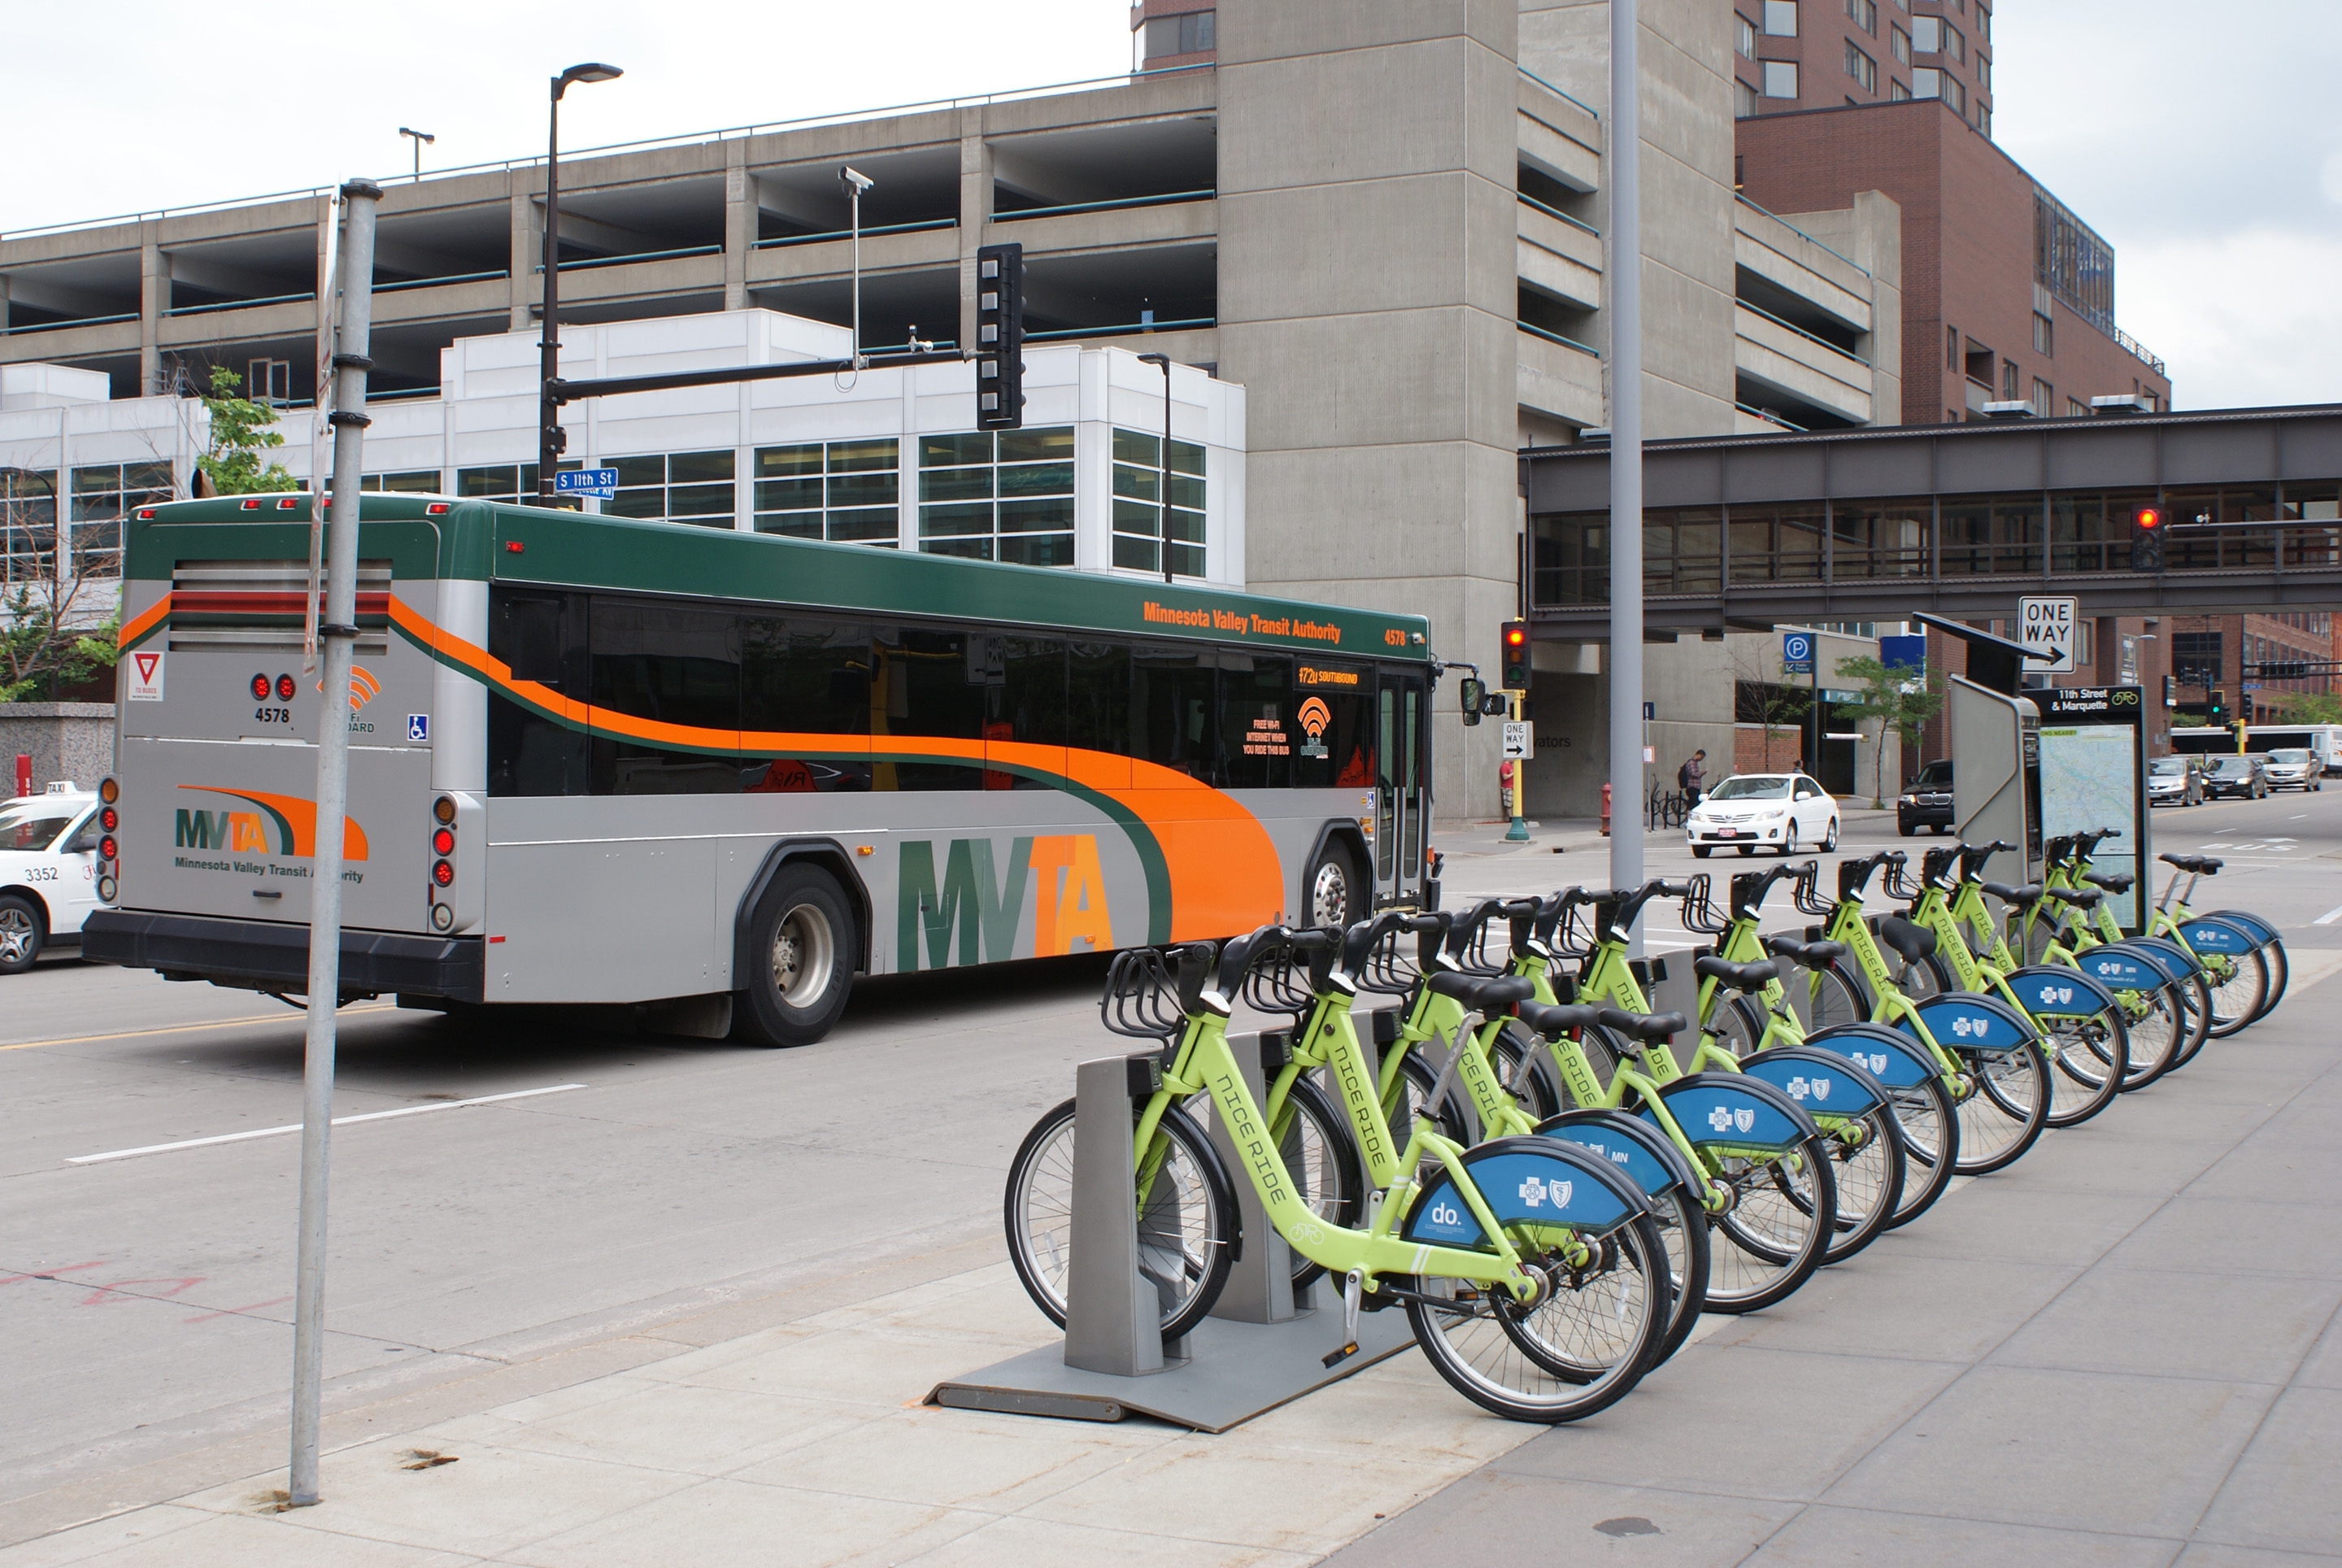 More than 60 percent of Minnesota Valley Transit Authority ridership is for commuters to Minneapolis.